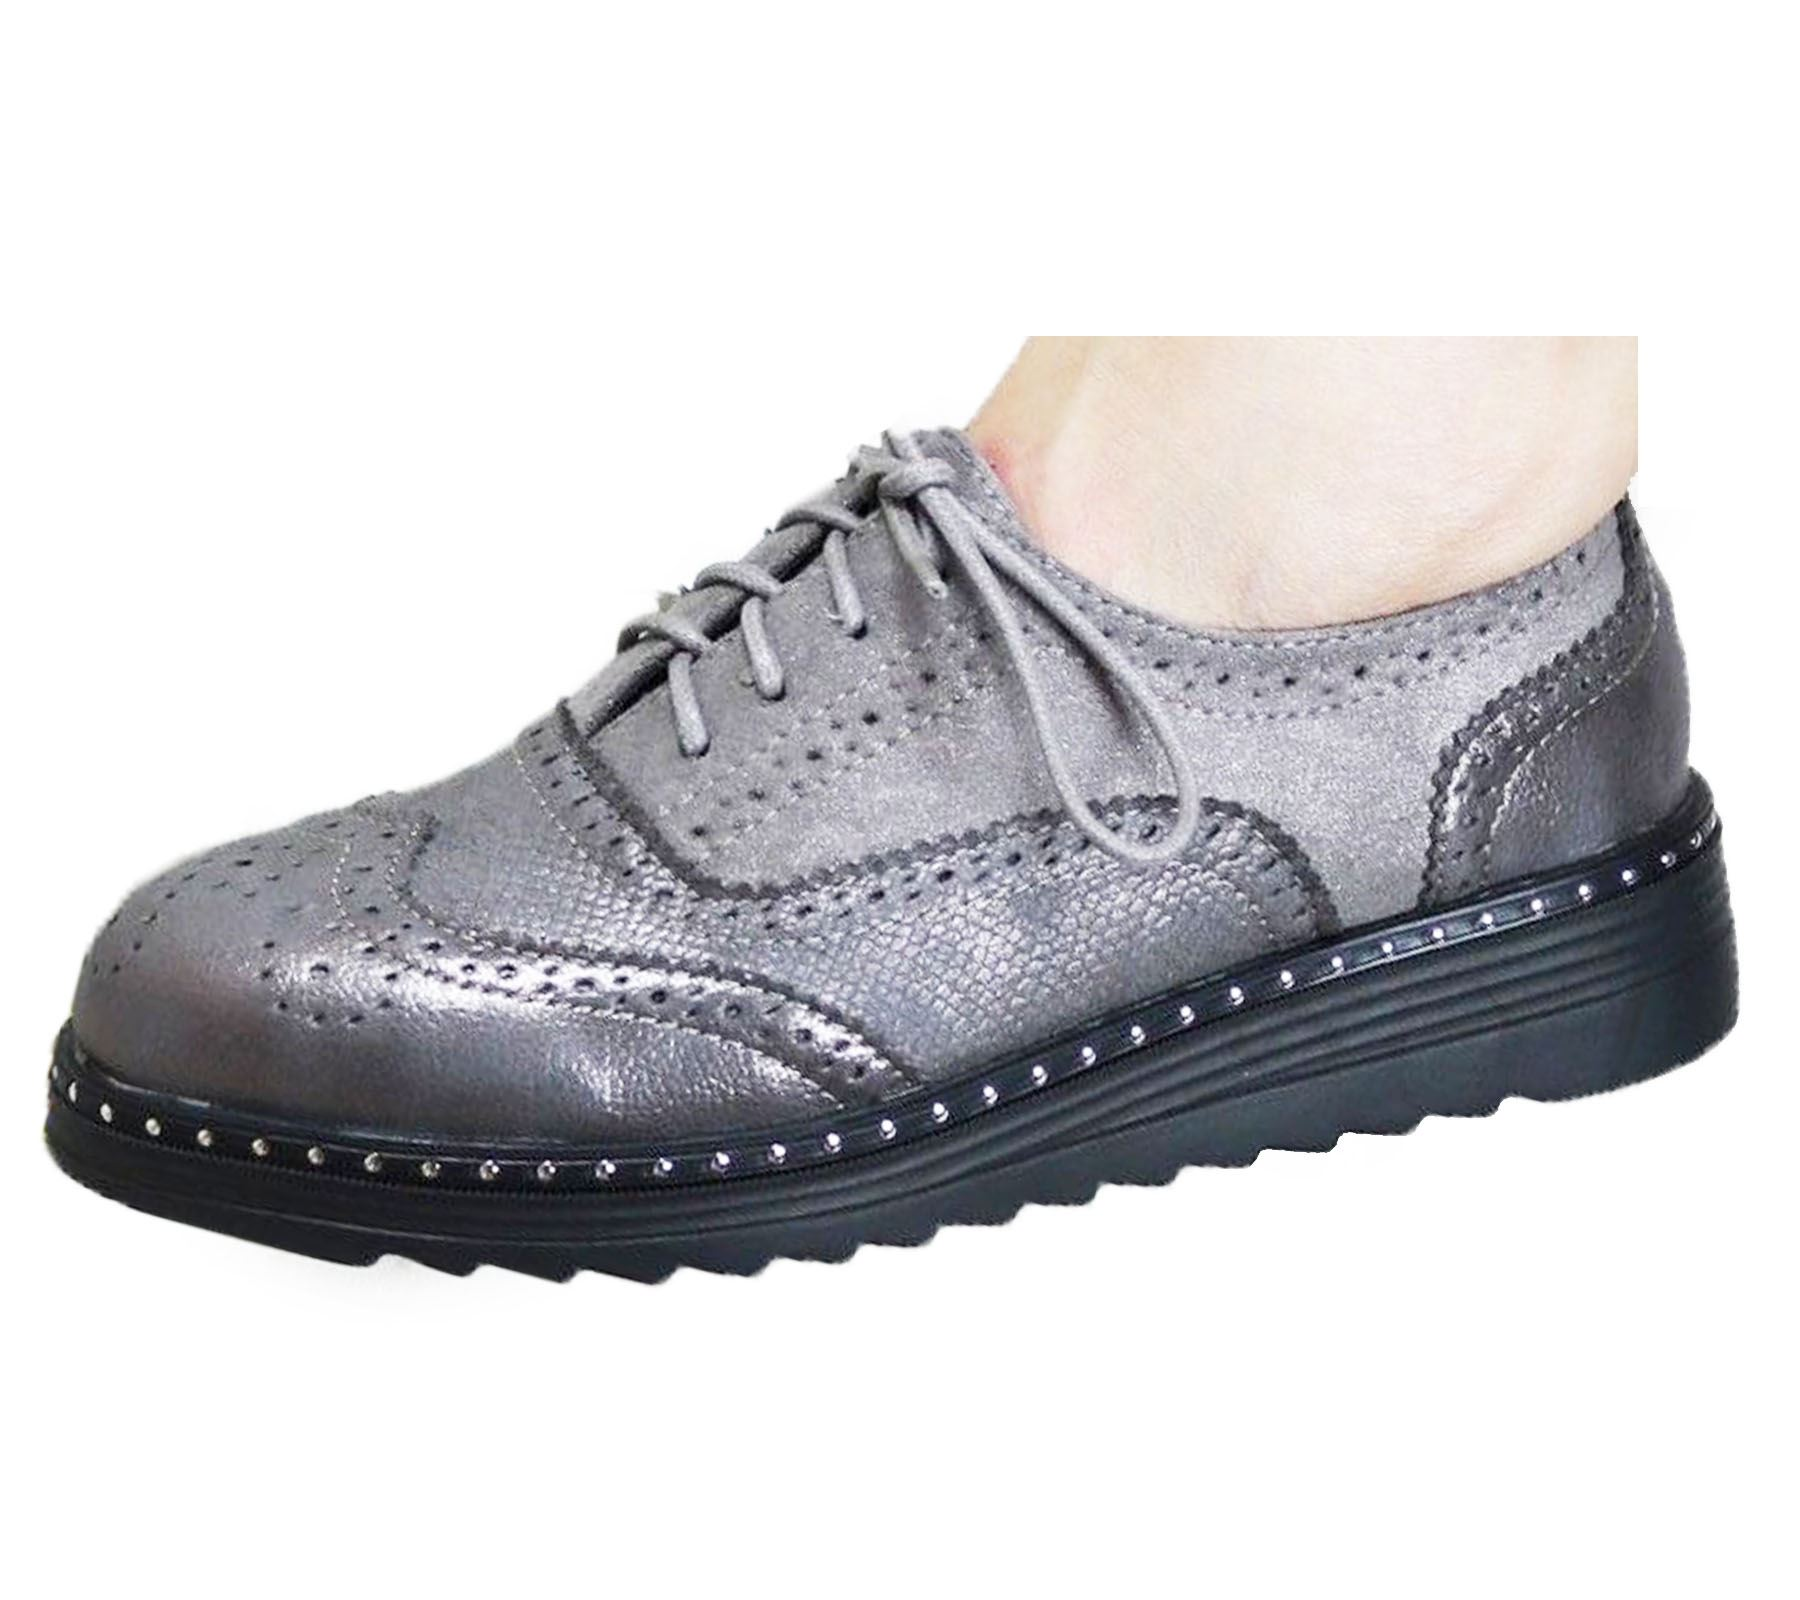 Ladies-Brogue-Lace-Up-Shoes-Womens-Oxford-Smart-Office-Loafers-Shoes miniatura 19